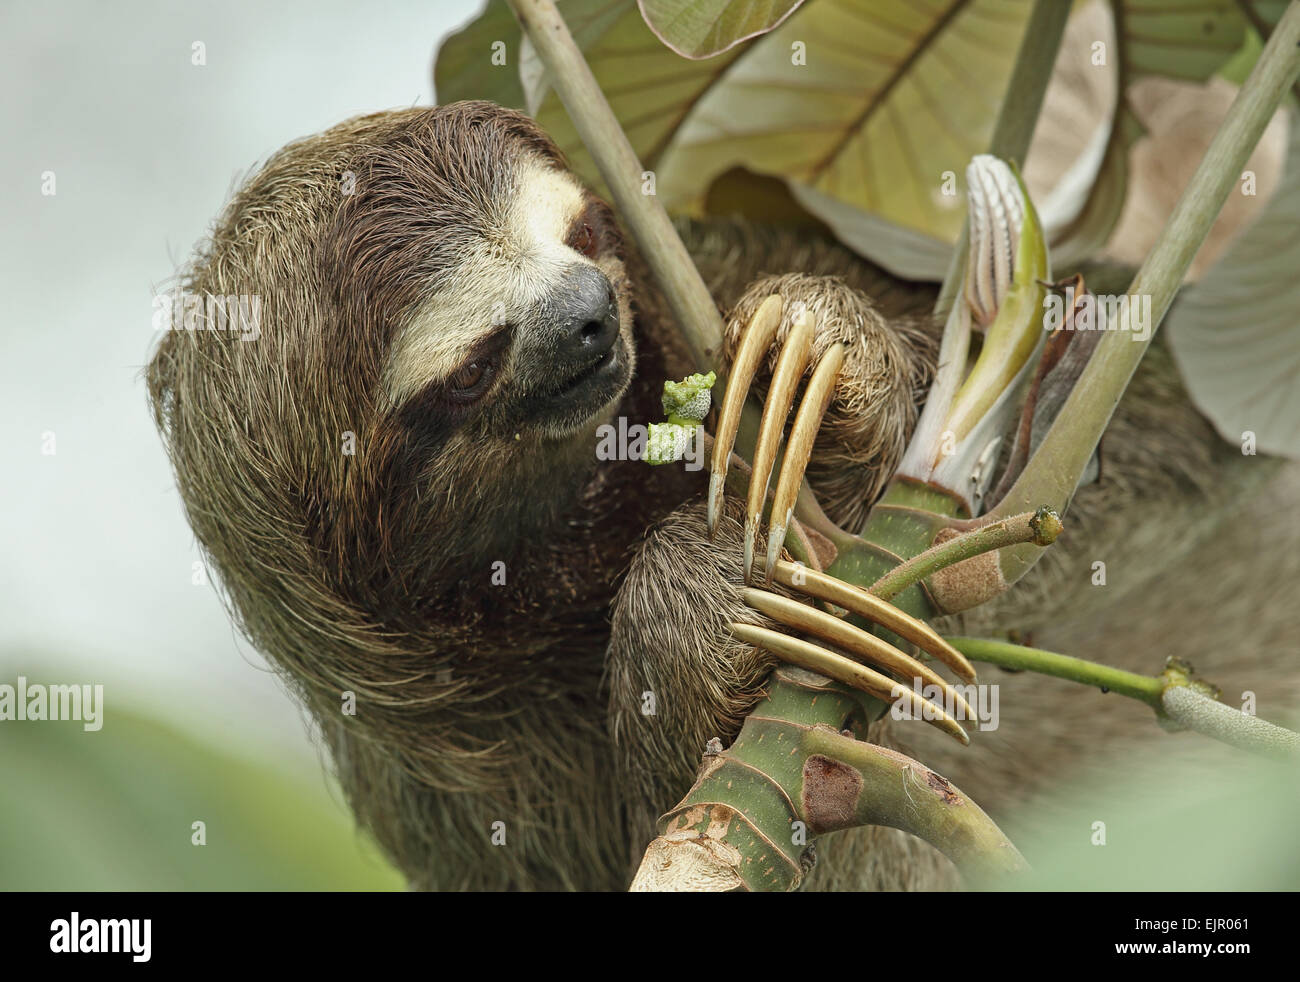 Brown-throated Three-toed Sloth (Bradypus variegatus) adult, close-up of head and claws, feeding on fruit, Canopy Tower, Panama, November Stock Photo